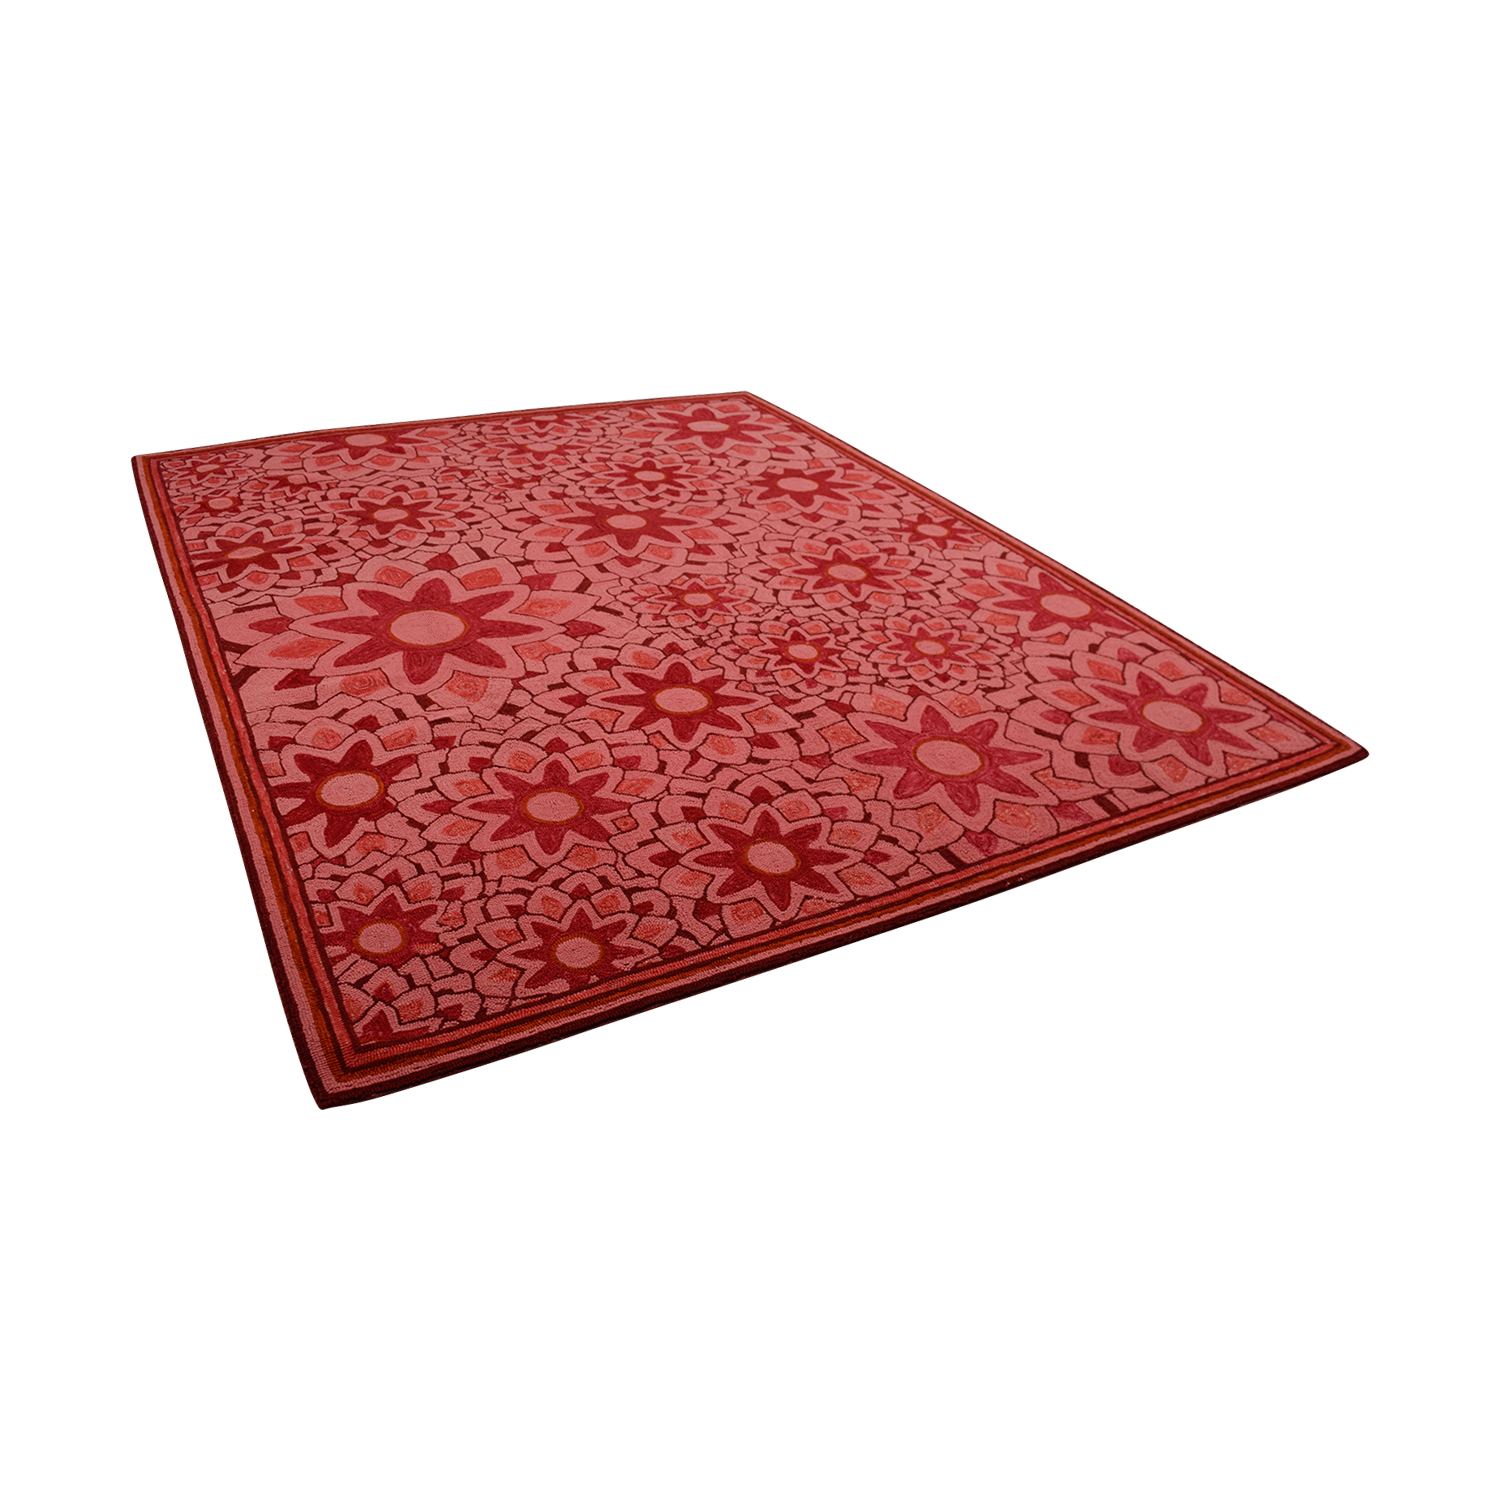 shop Obeetee Hand Hooked Red Floral Rug Obeetee Decor